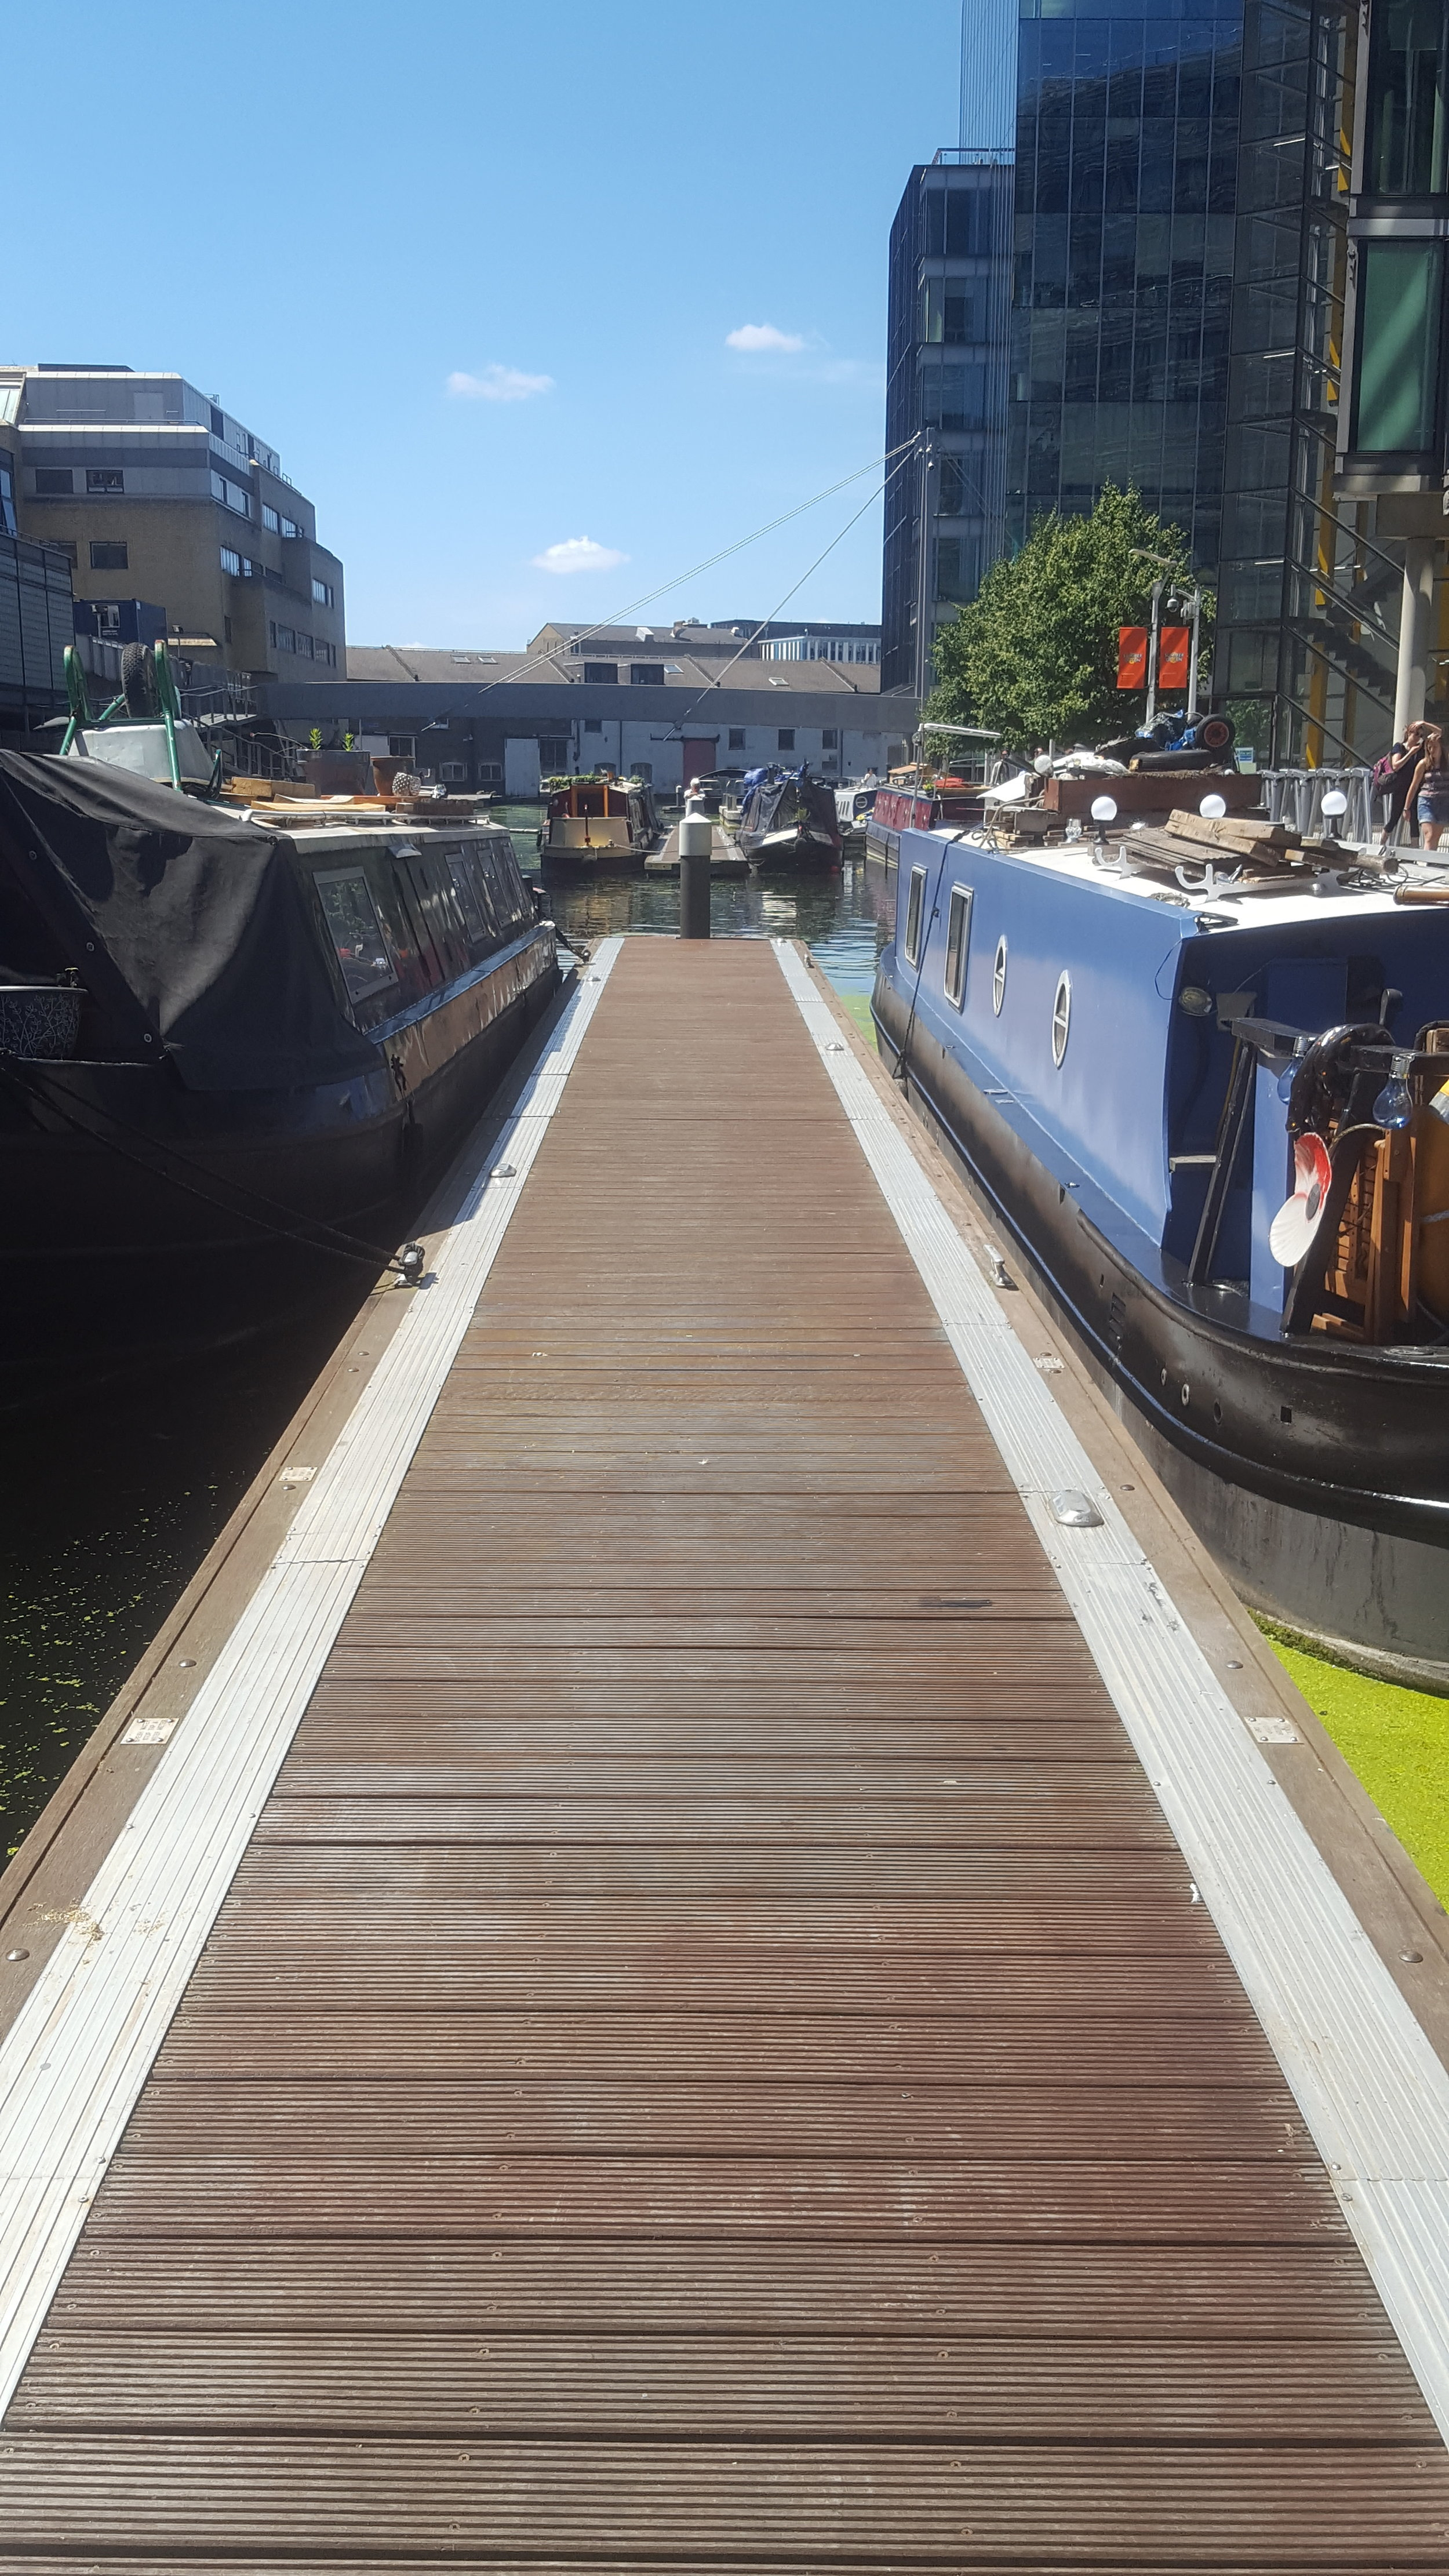 GoBoat London electric boat hire